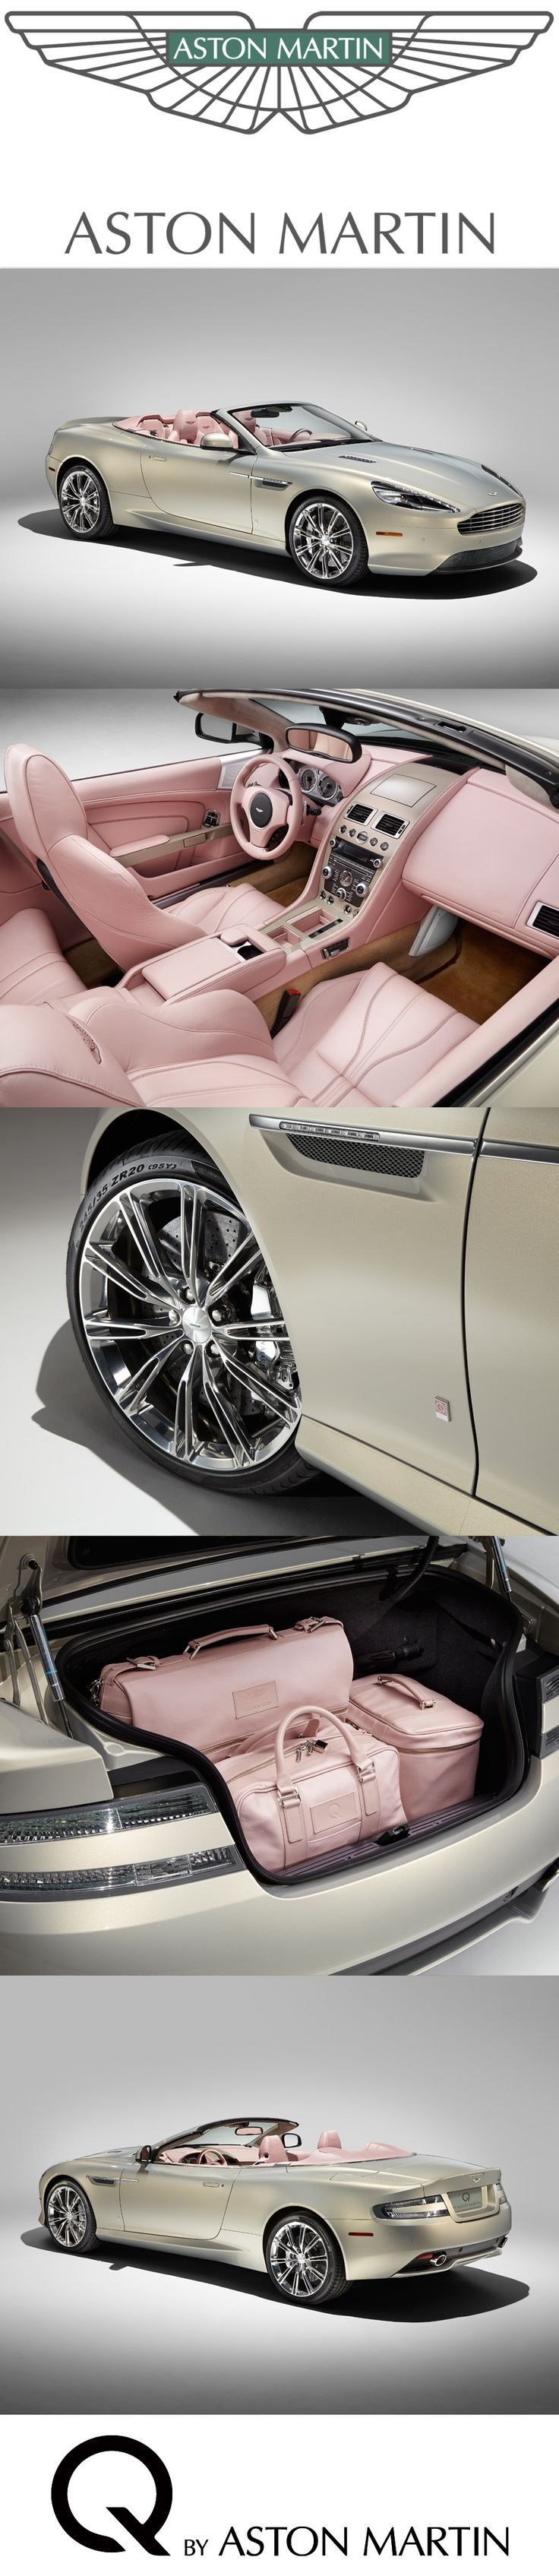 A bespoke commission to be showcased at Pebble Beach®️️ Automotive Week 2014. This luxurious Q DB9 Volante is inspired by fashion and given a distinct character by its special blush pearl leather interior paired with a coolness of Piano Ice Mocha seen on full waterfall with matching door grabs. | RUSSELL & GERRI'S CARS